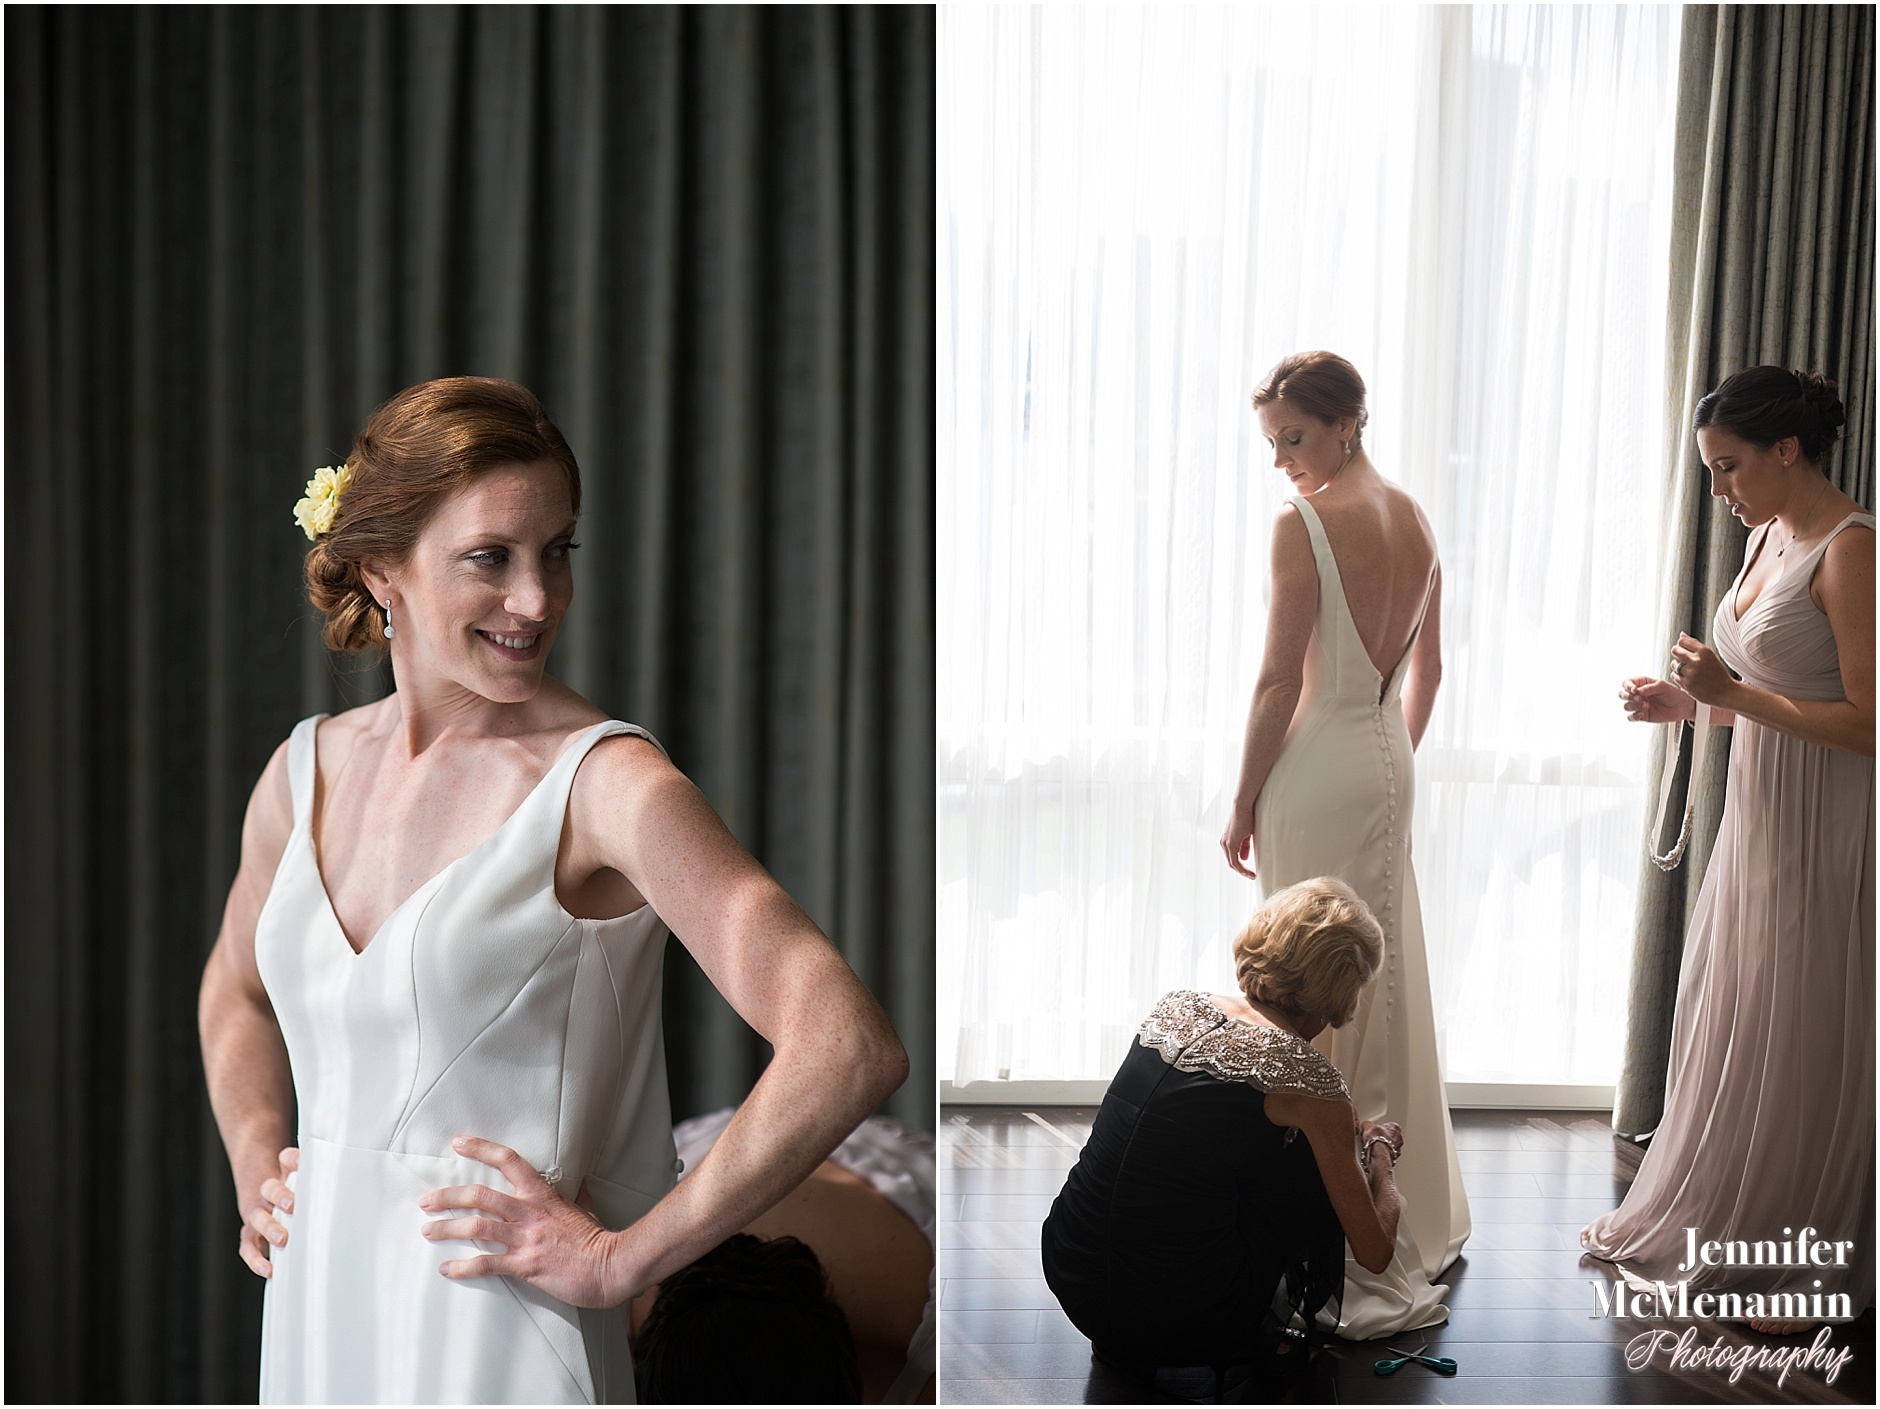 008-Four-Seasons-Baltimore-wedding-Jennifer-McMenamin-Photography